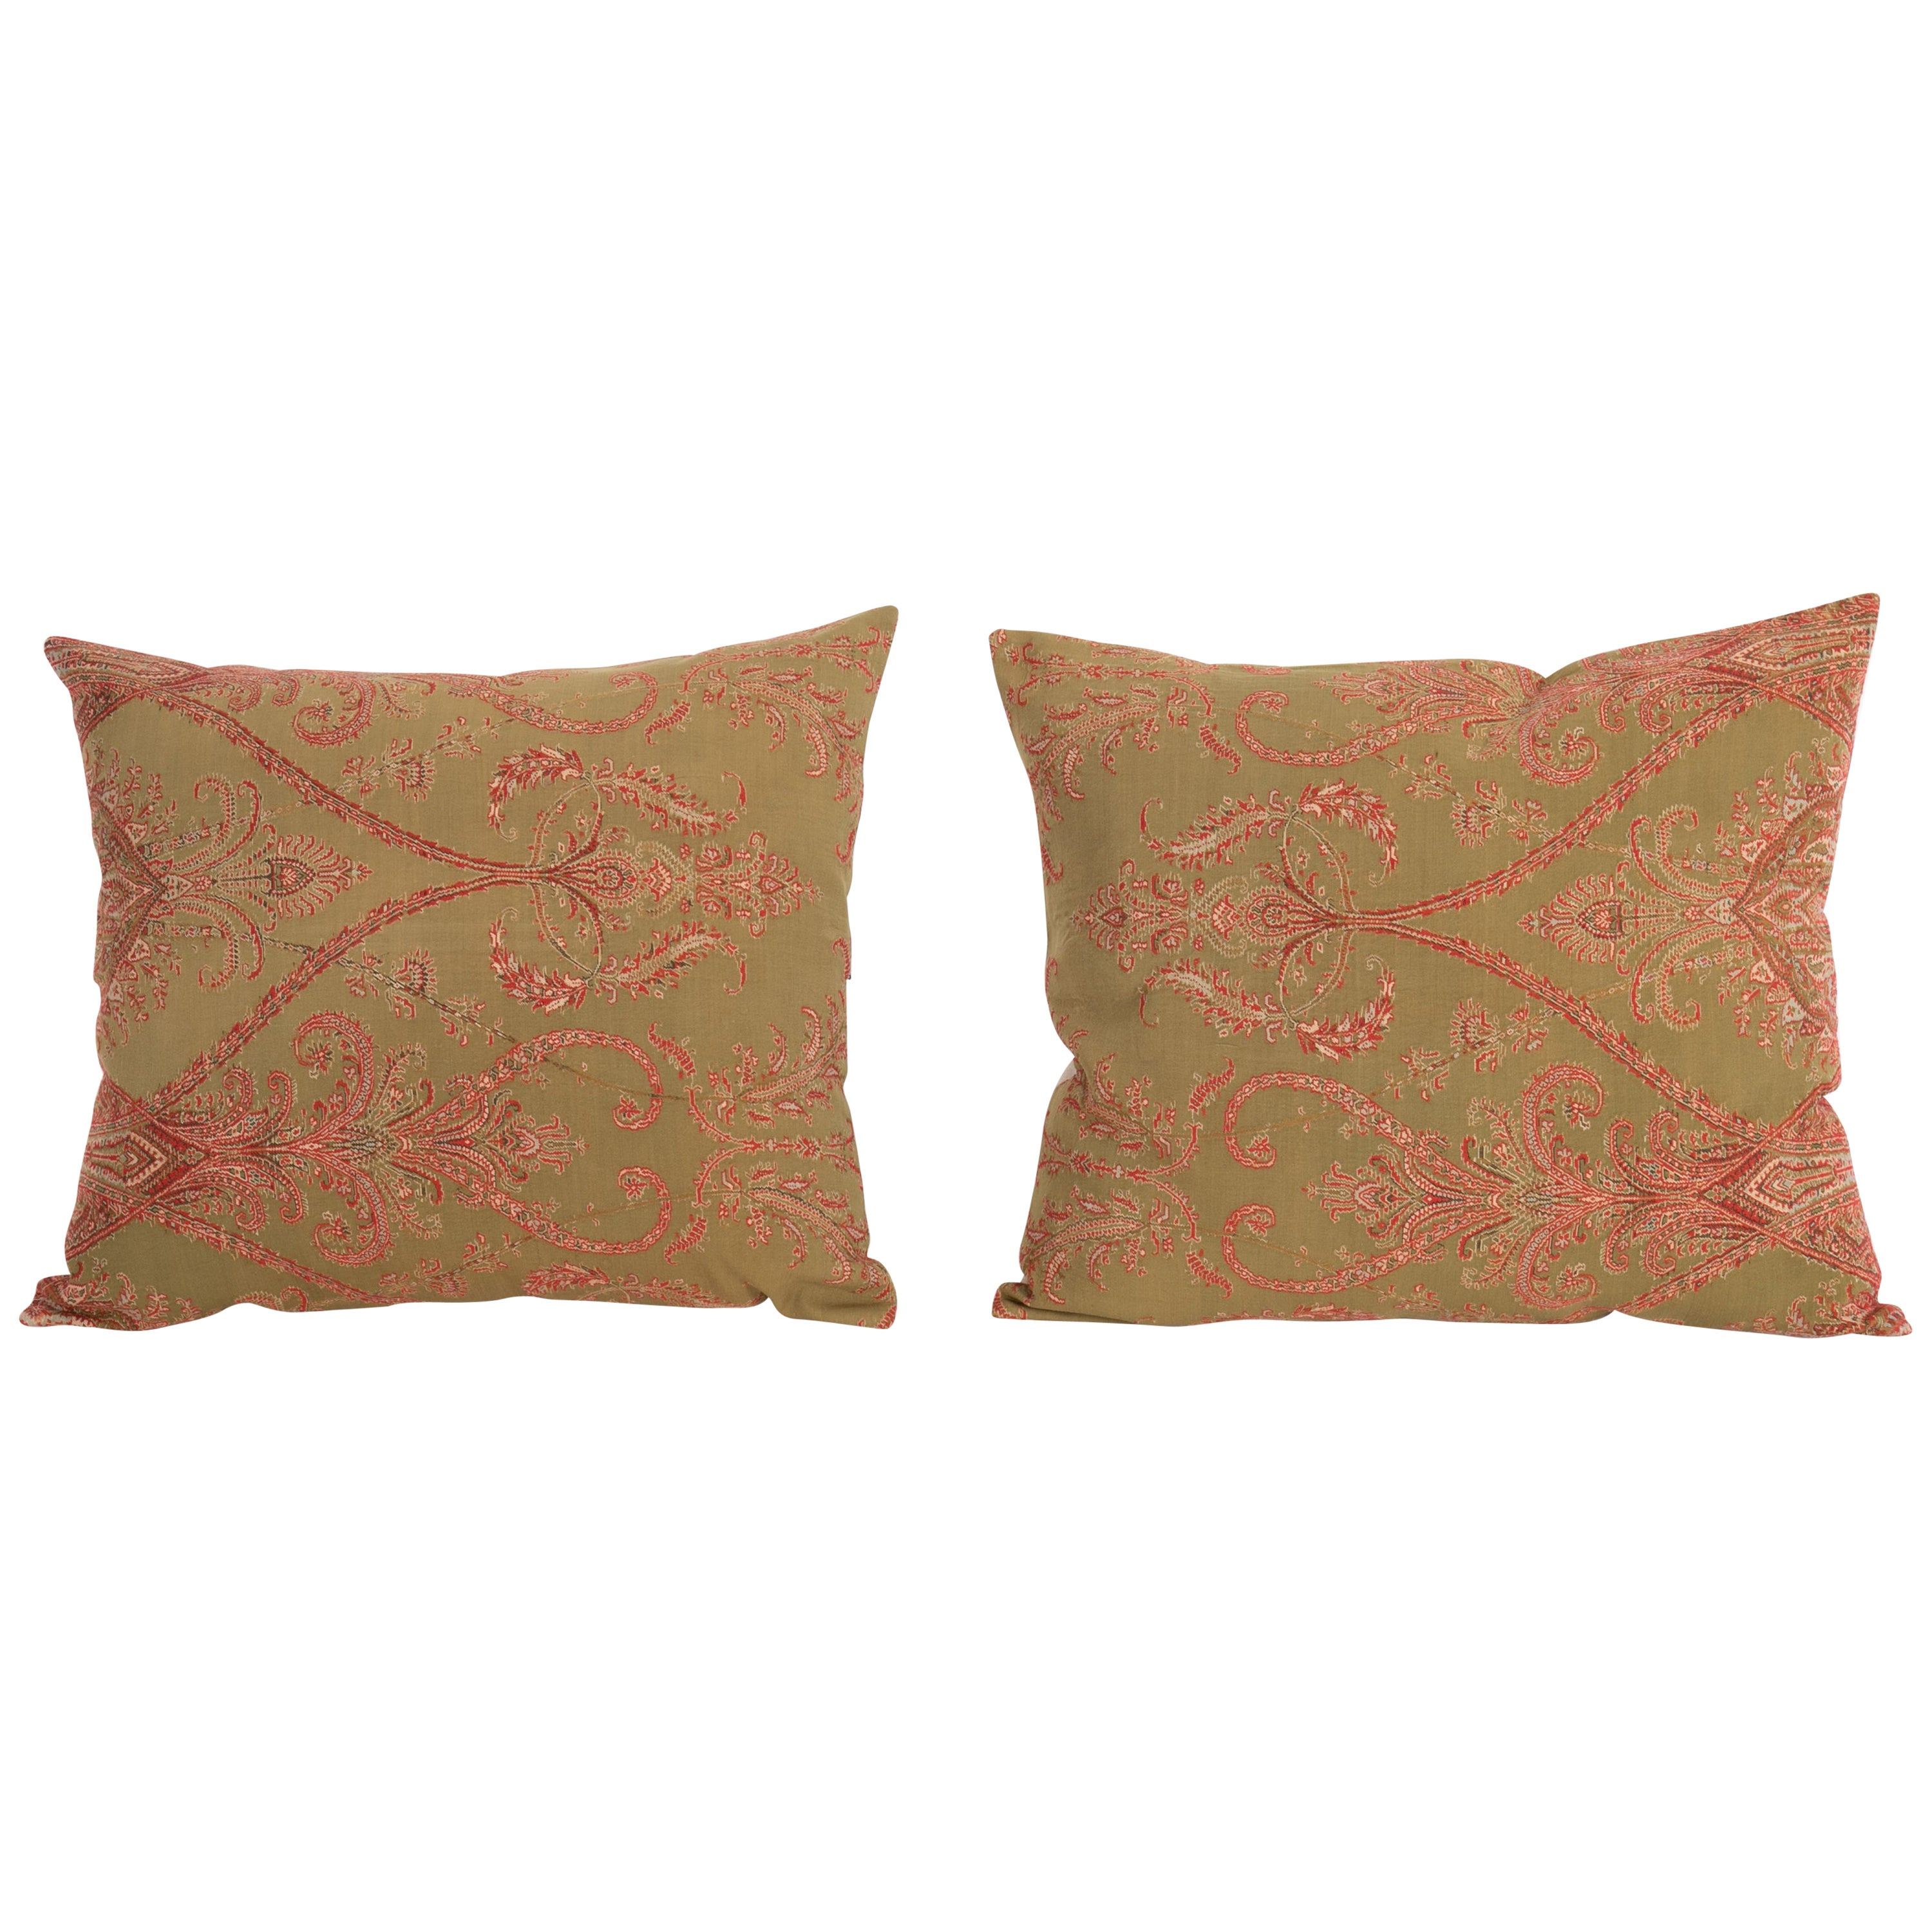 Antique Paisley Wool Pillow Cases, 19th Century